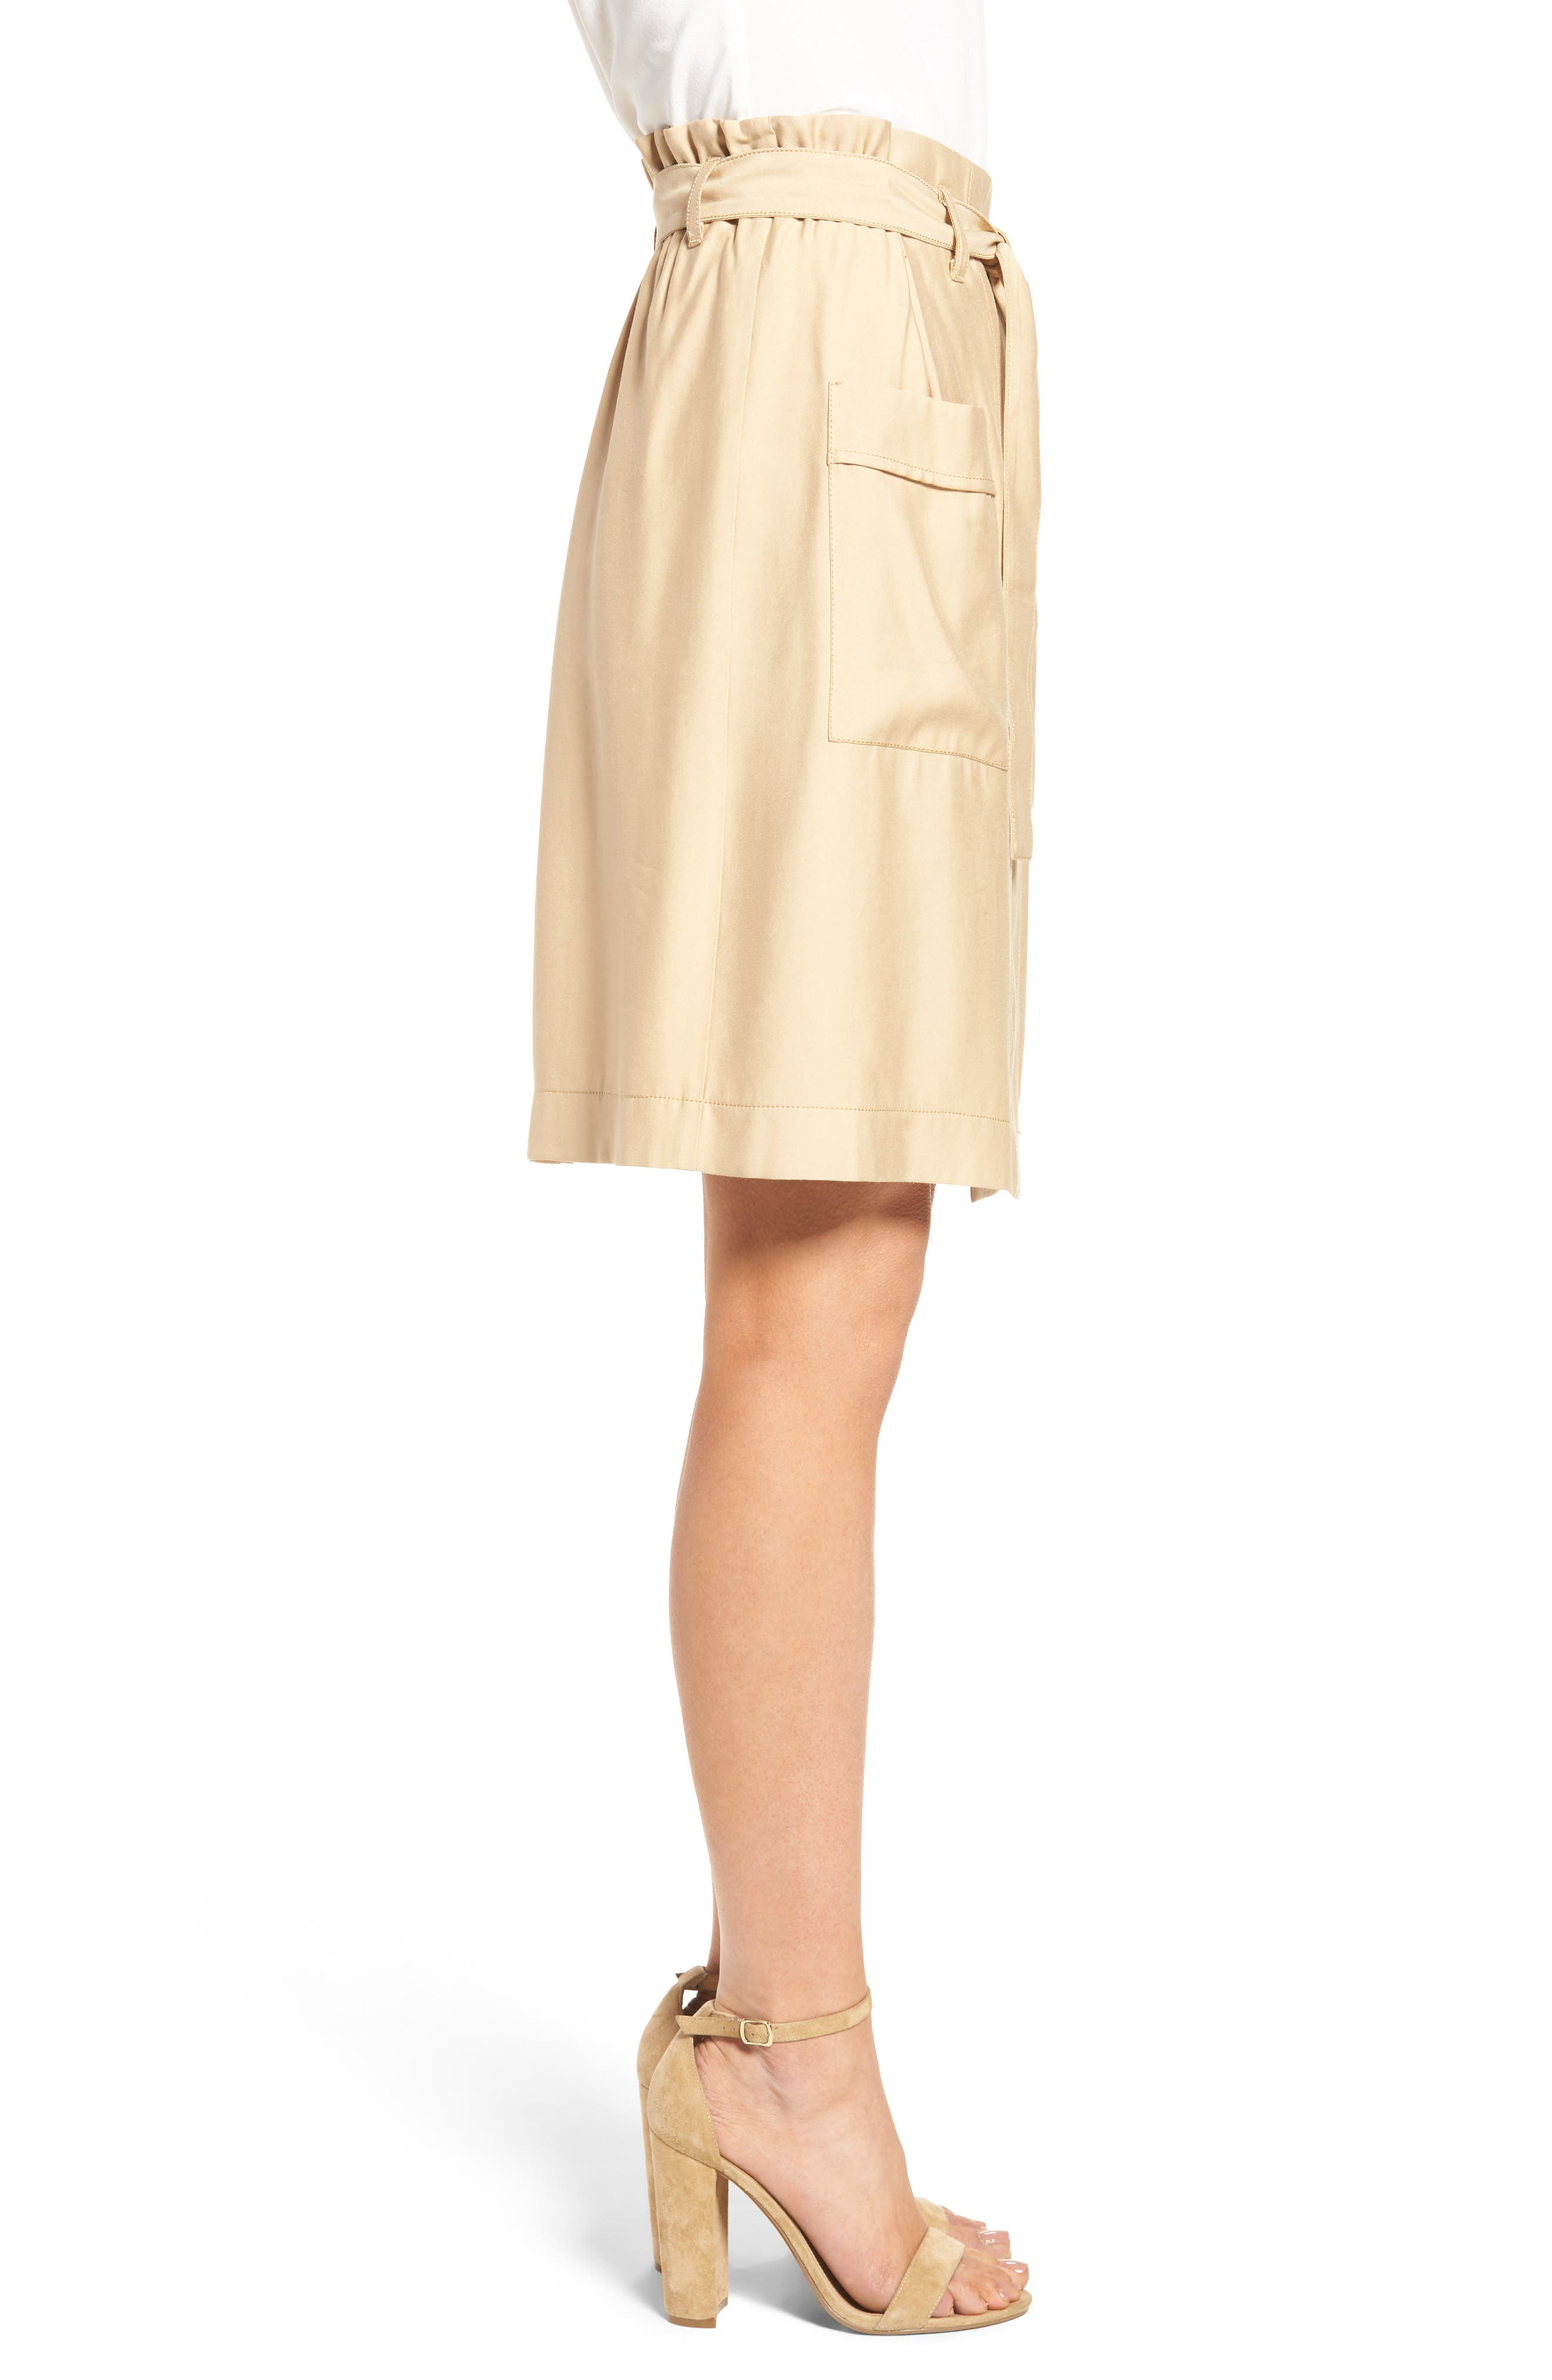 CATHERINE CATHERINE MALANDRINO, Tyra Belted Skirt, Alternate thumbnail 3, color, 283